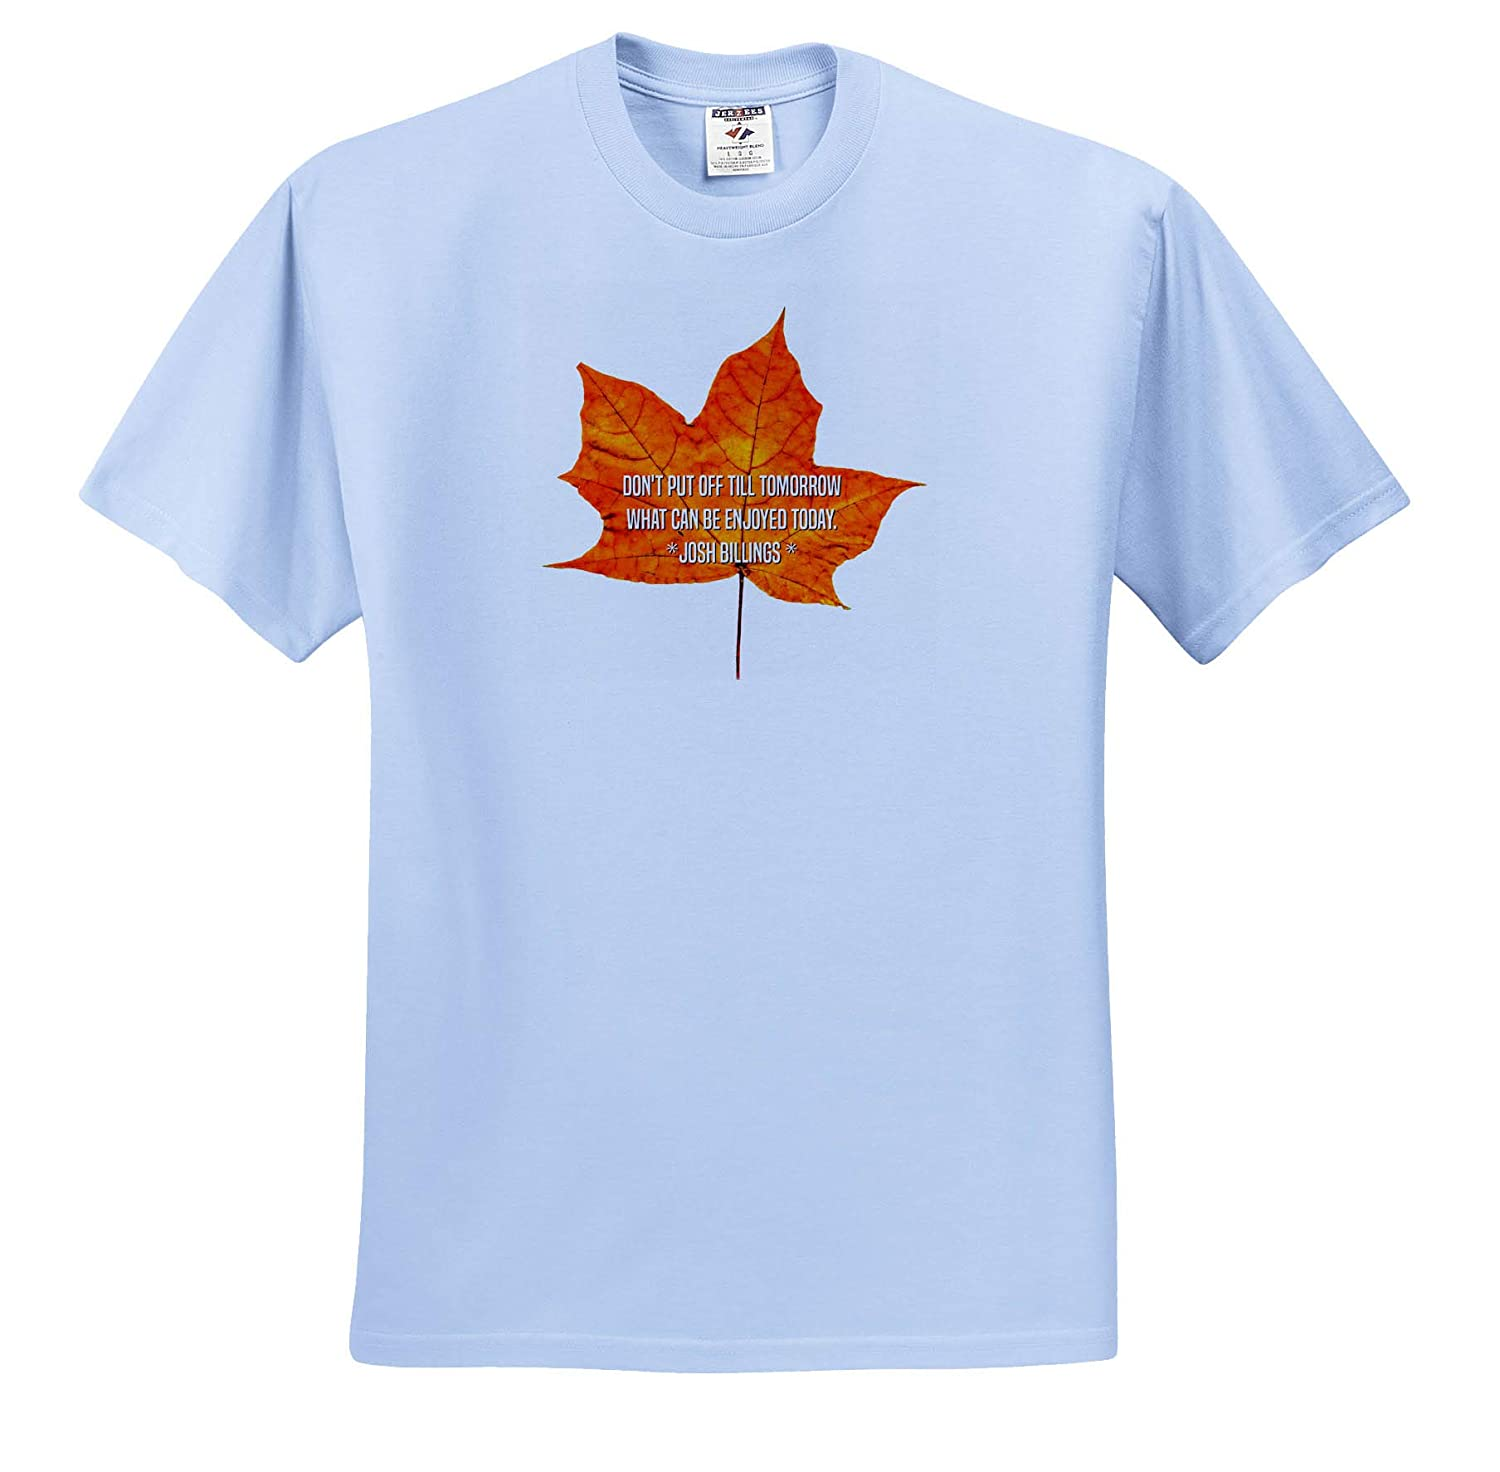 Quotes Josh Billing - T-Shirts Maple Leaf and The Text Do not Put Off Till Tomorrow What You can 3dRose Alexis Design